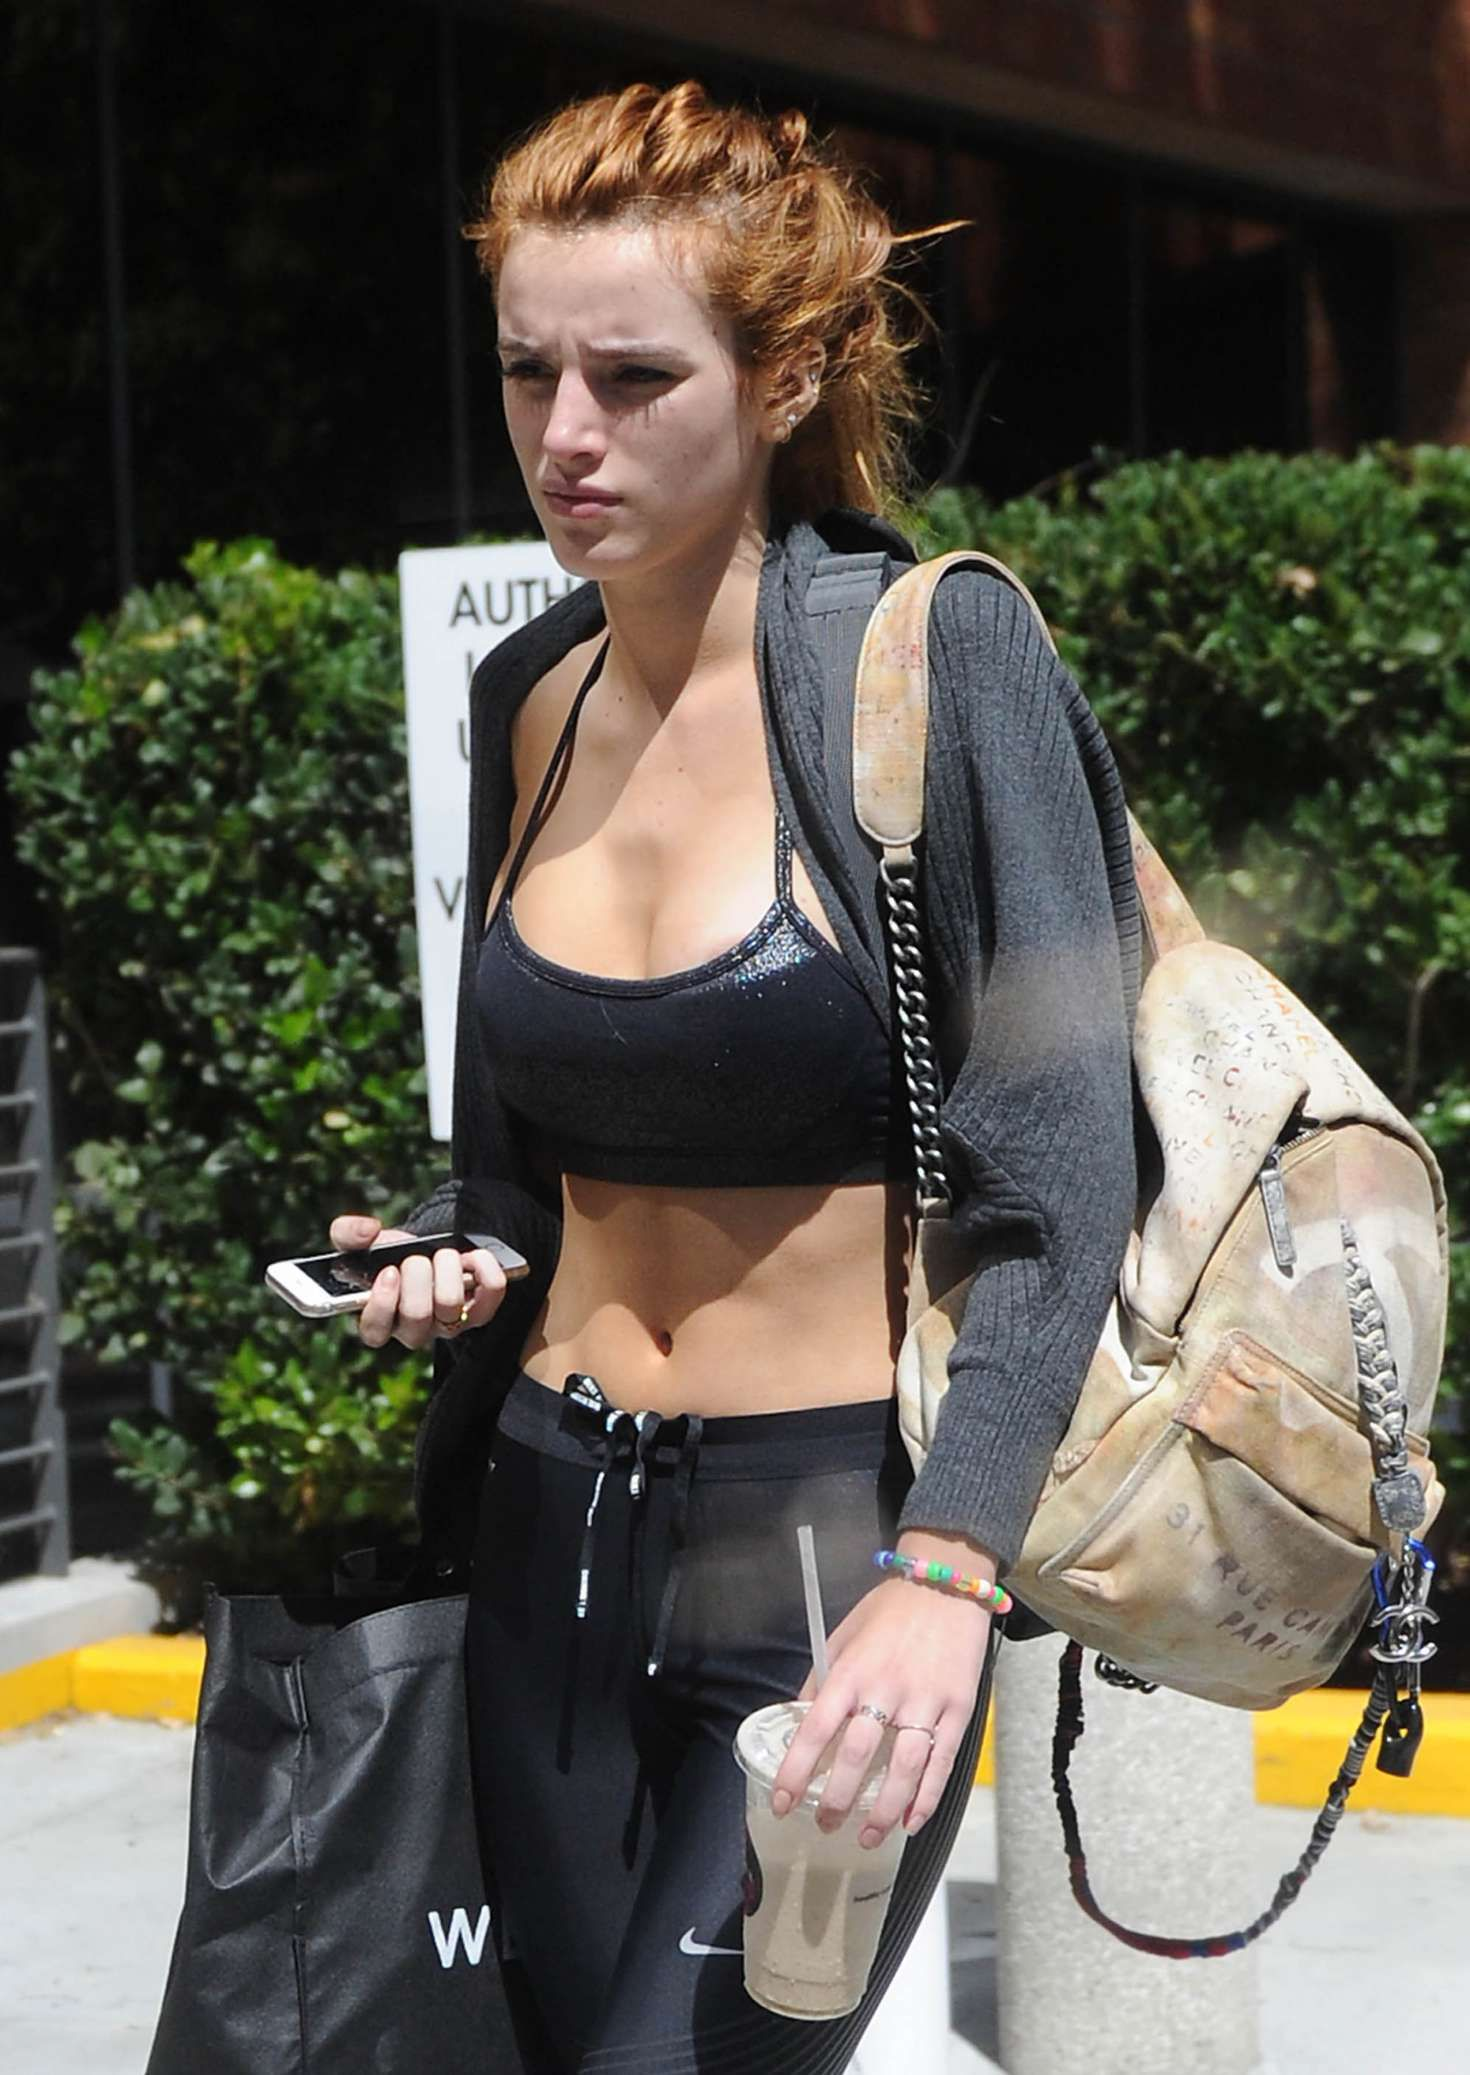 Paparazzi Kaili Thorne naked (58 foto and video), Tits, Hot, Boobs, braless 2015